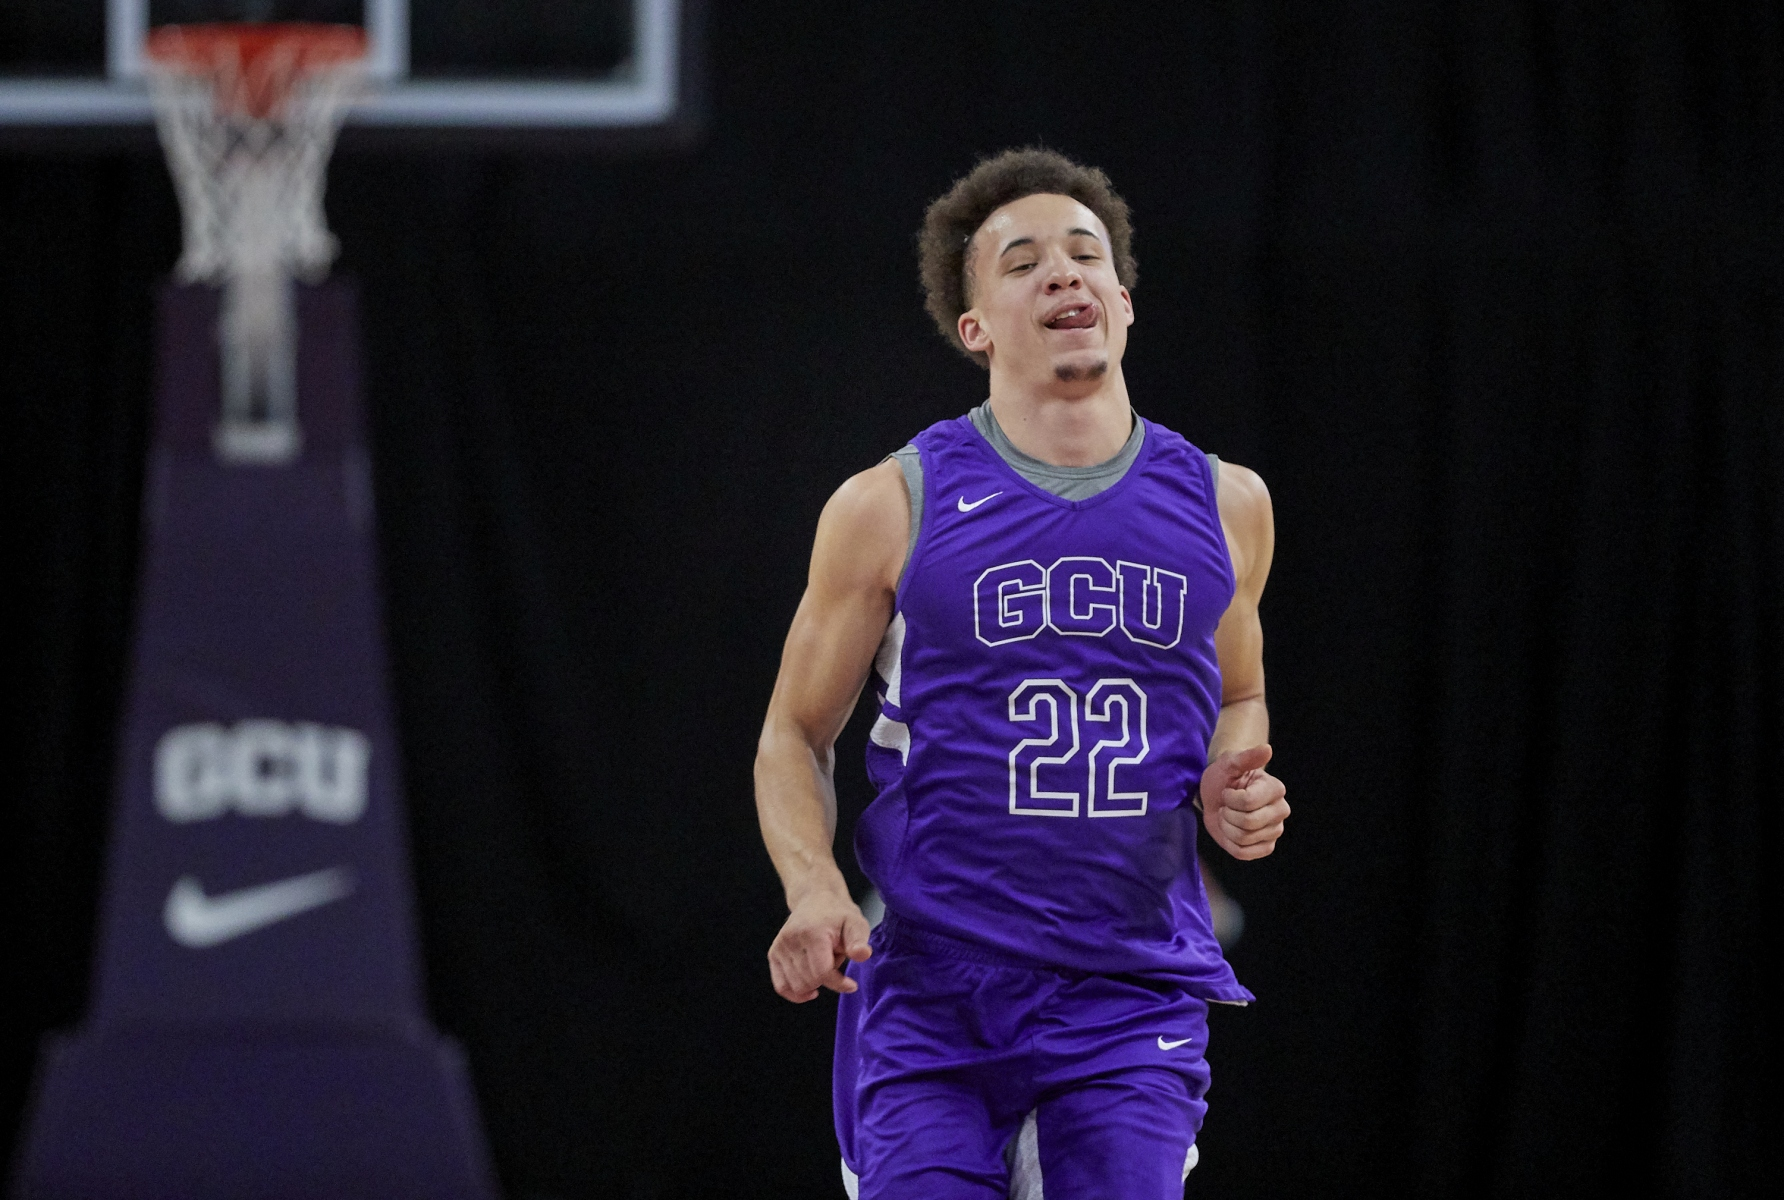 GCU freshman guard Jayden Stone is expected to have an immediate impact for the Lopes in 2020-21. Courtesy GCU Athletics